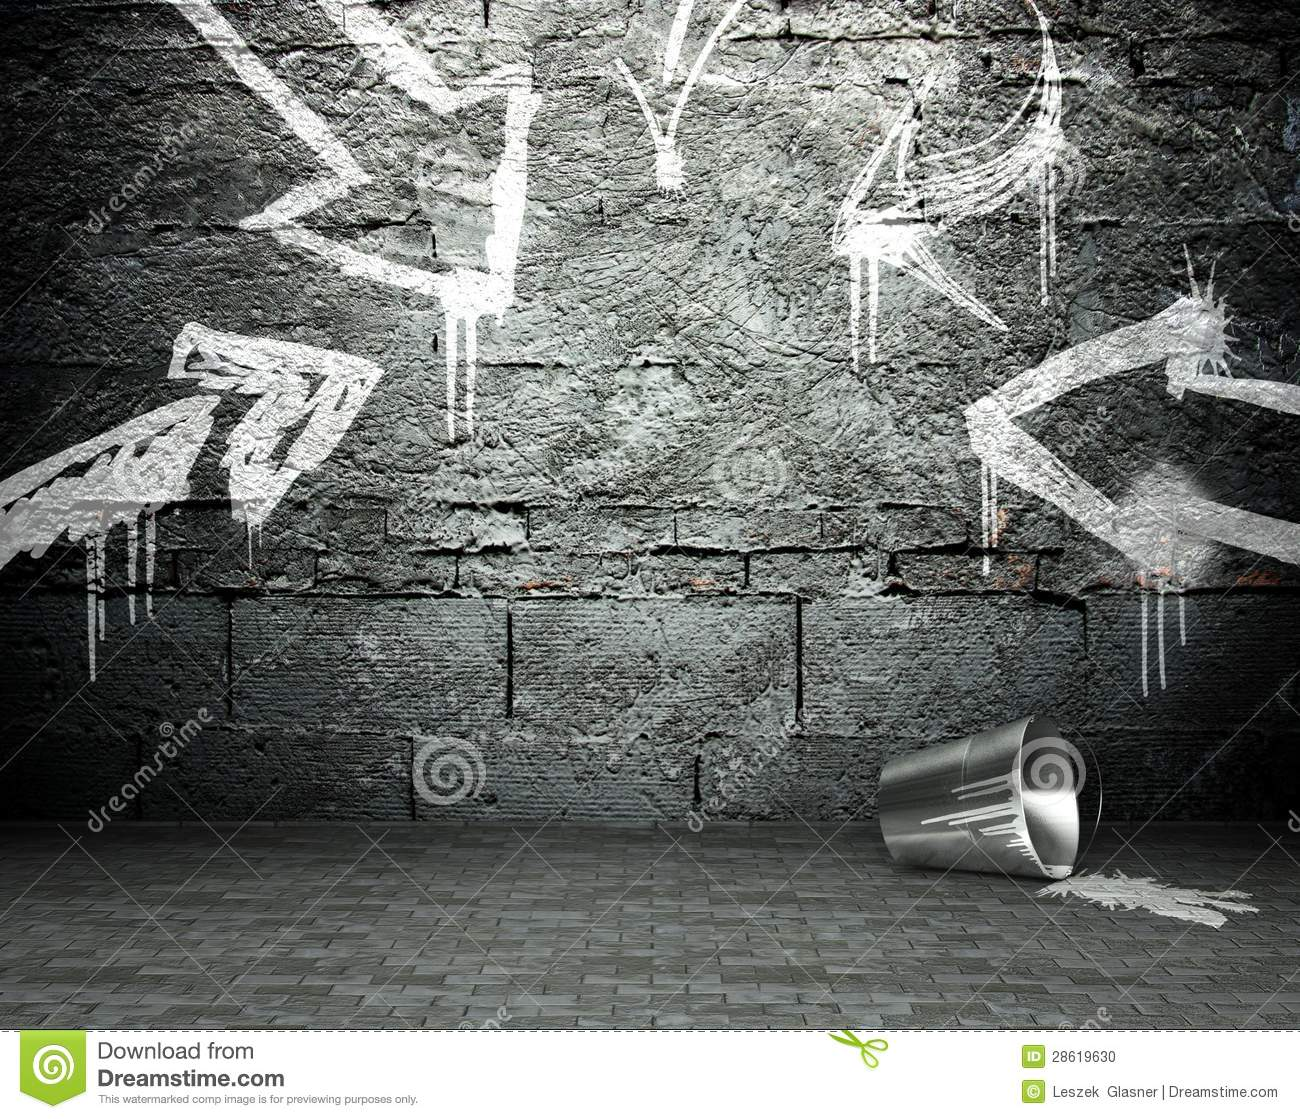 Grafitti wall background - Graffiti Wall With Frame And Arrows Street Background Stock Photo